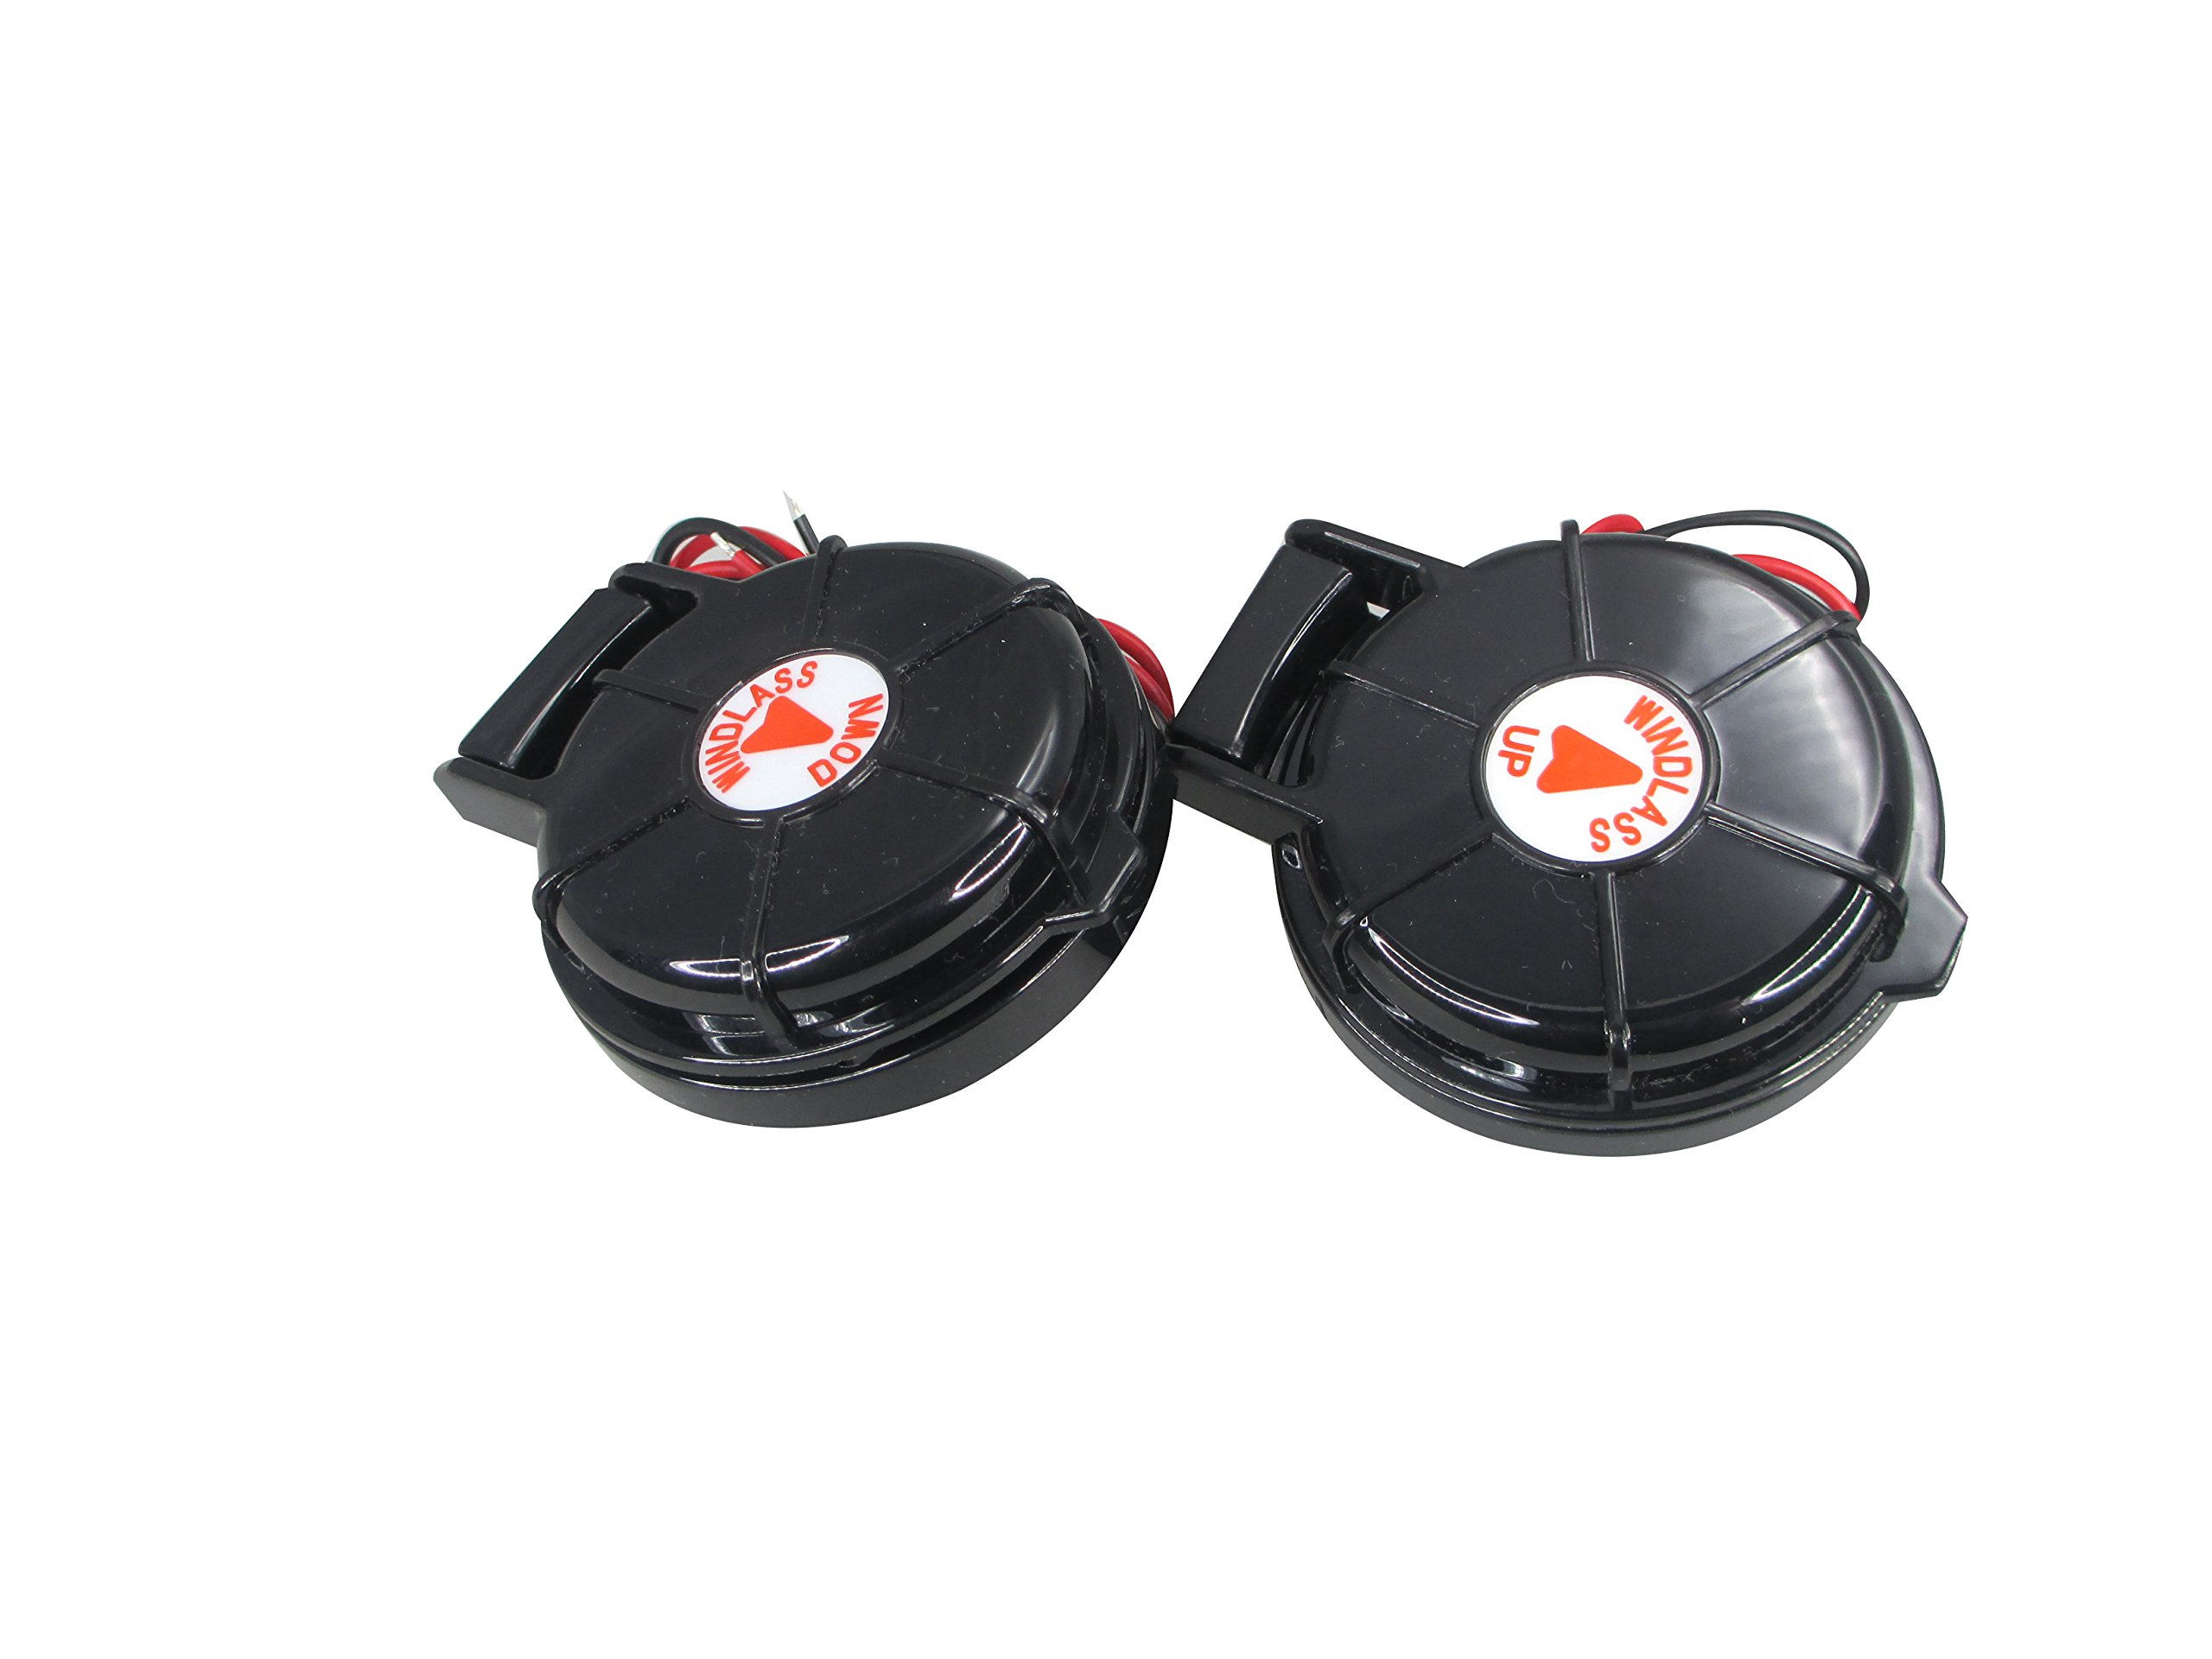 Pactrade Marine Boat Anchor Windlass Winch Foot Compact Switch Black 2 pcs Up & Down 12/24v 5A